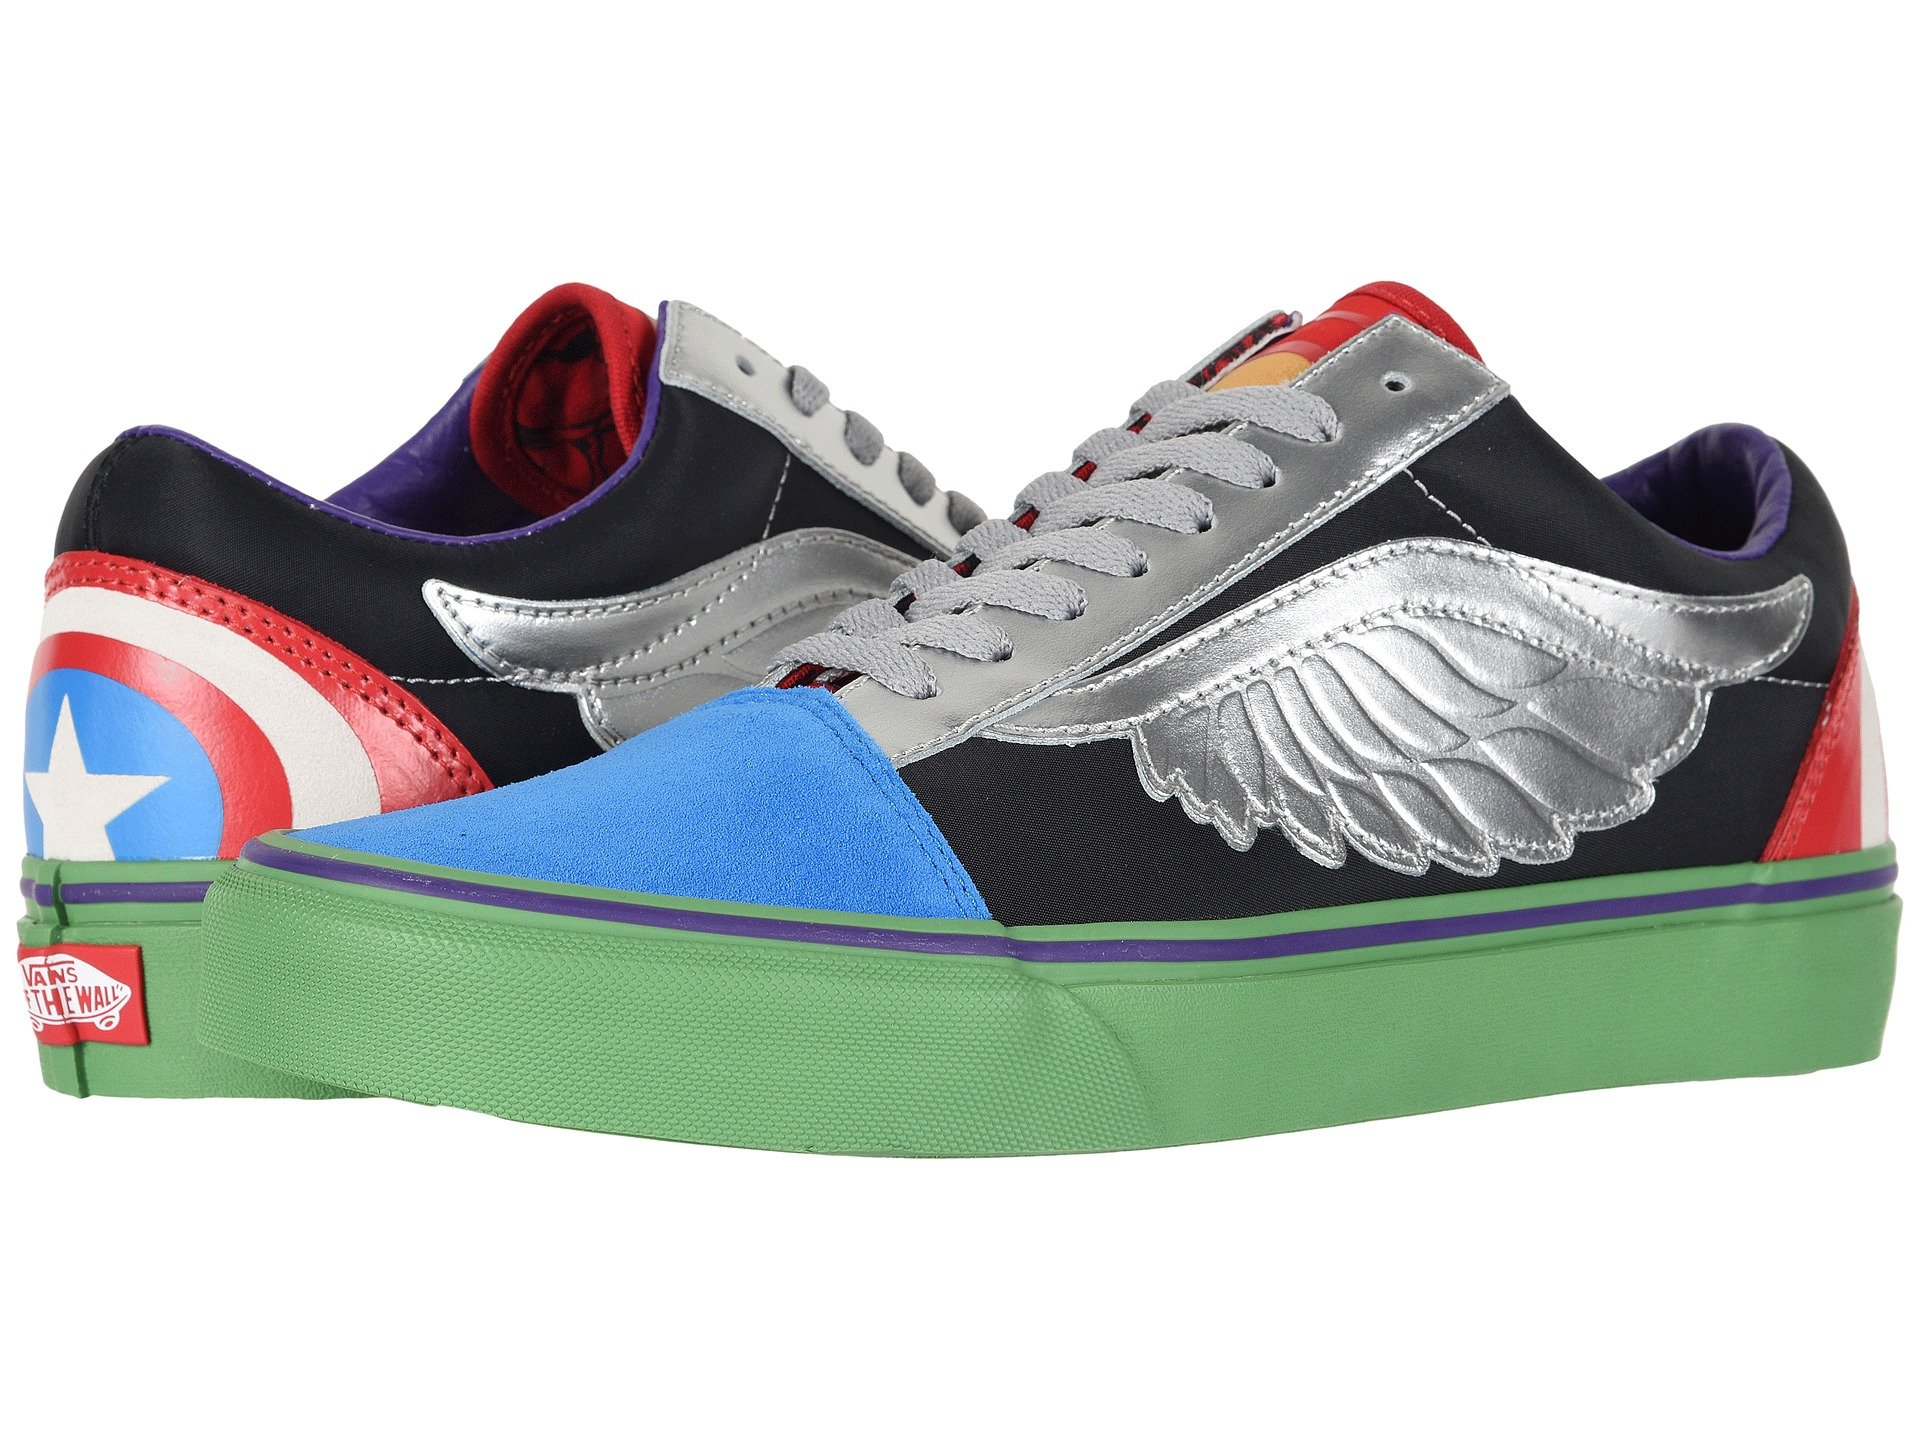 f6f63d579a Details about Marvel Comics Vans Womens Old Skool School Avengers lace up  sneakers Multicolor